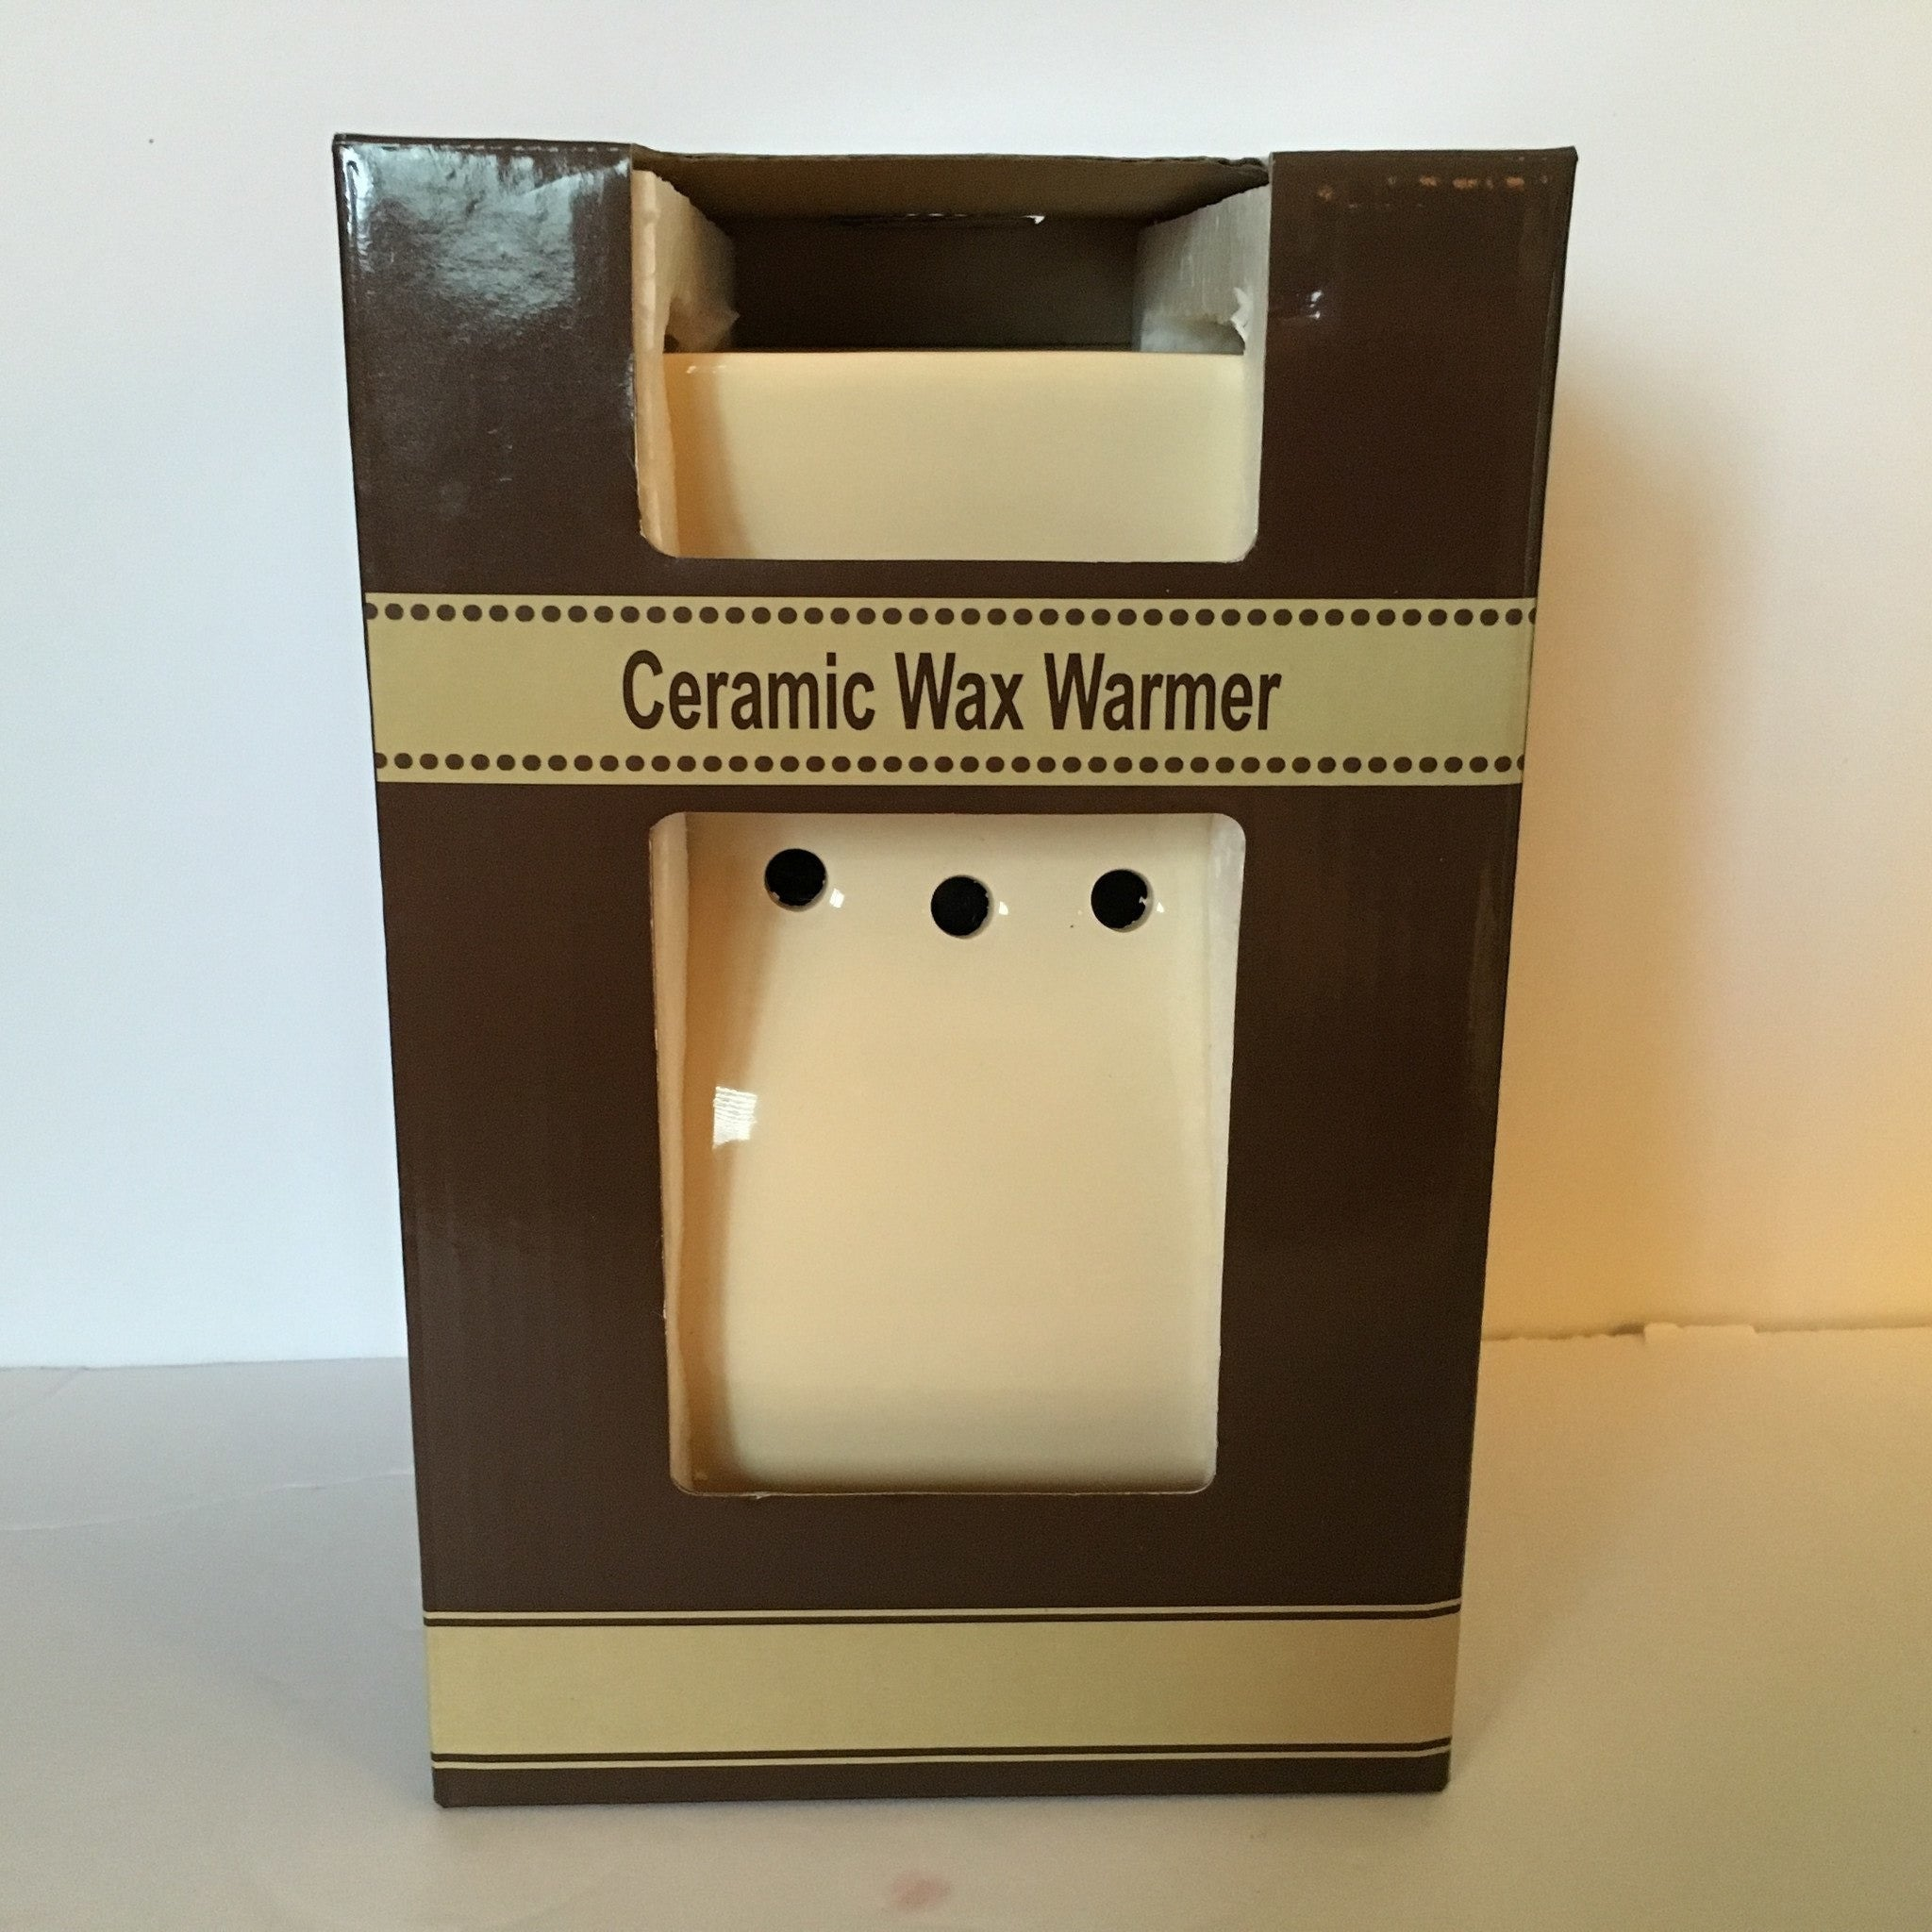 Ceramic Electric Wax Warmer #3 -  - Bella-Mia Naturals All Natural Soy Candles & Lip Balms - 1